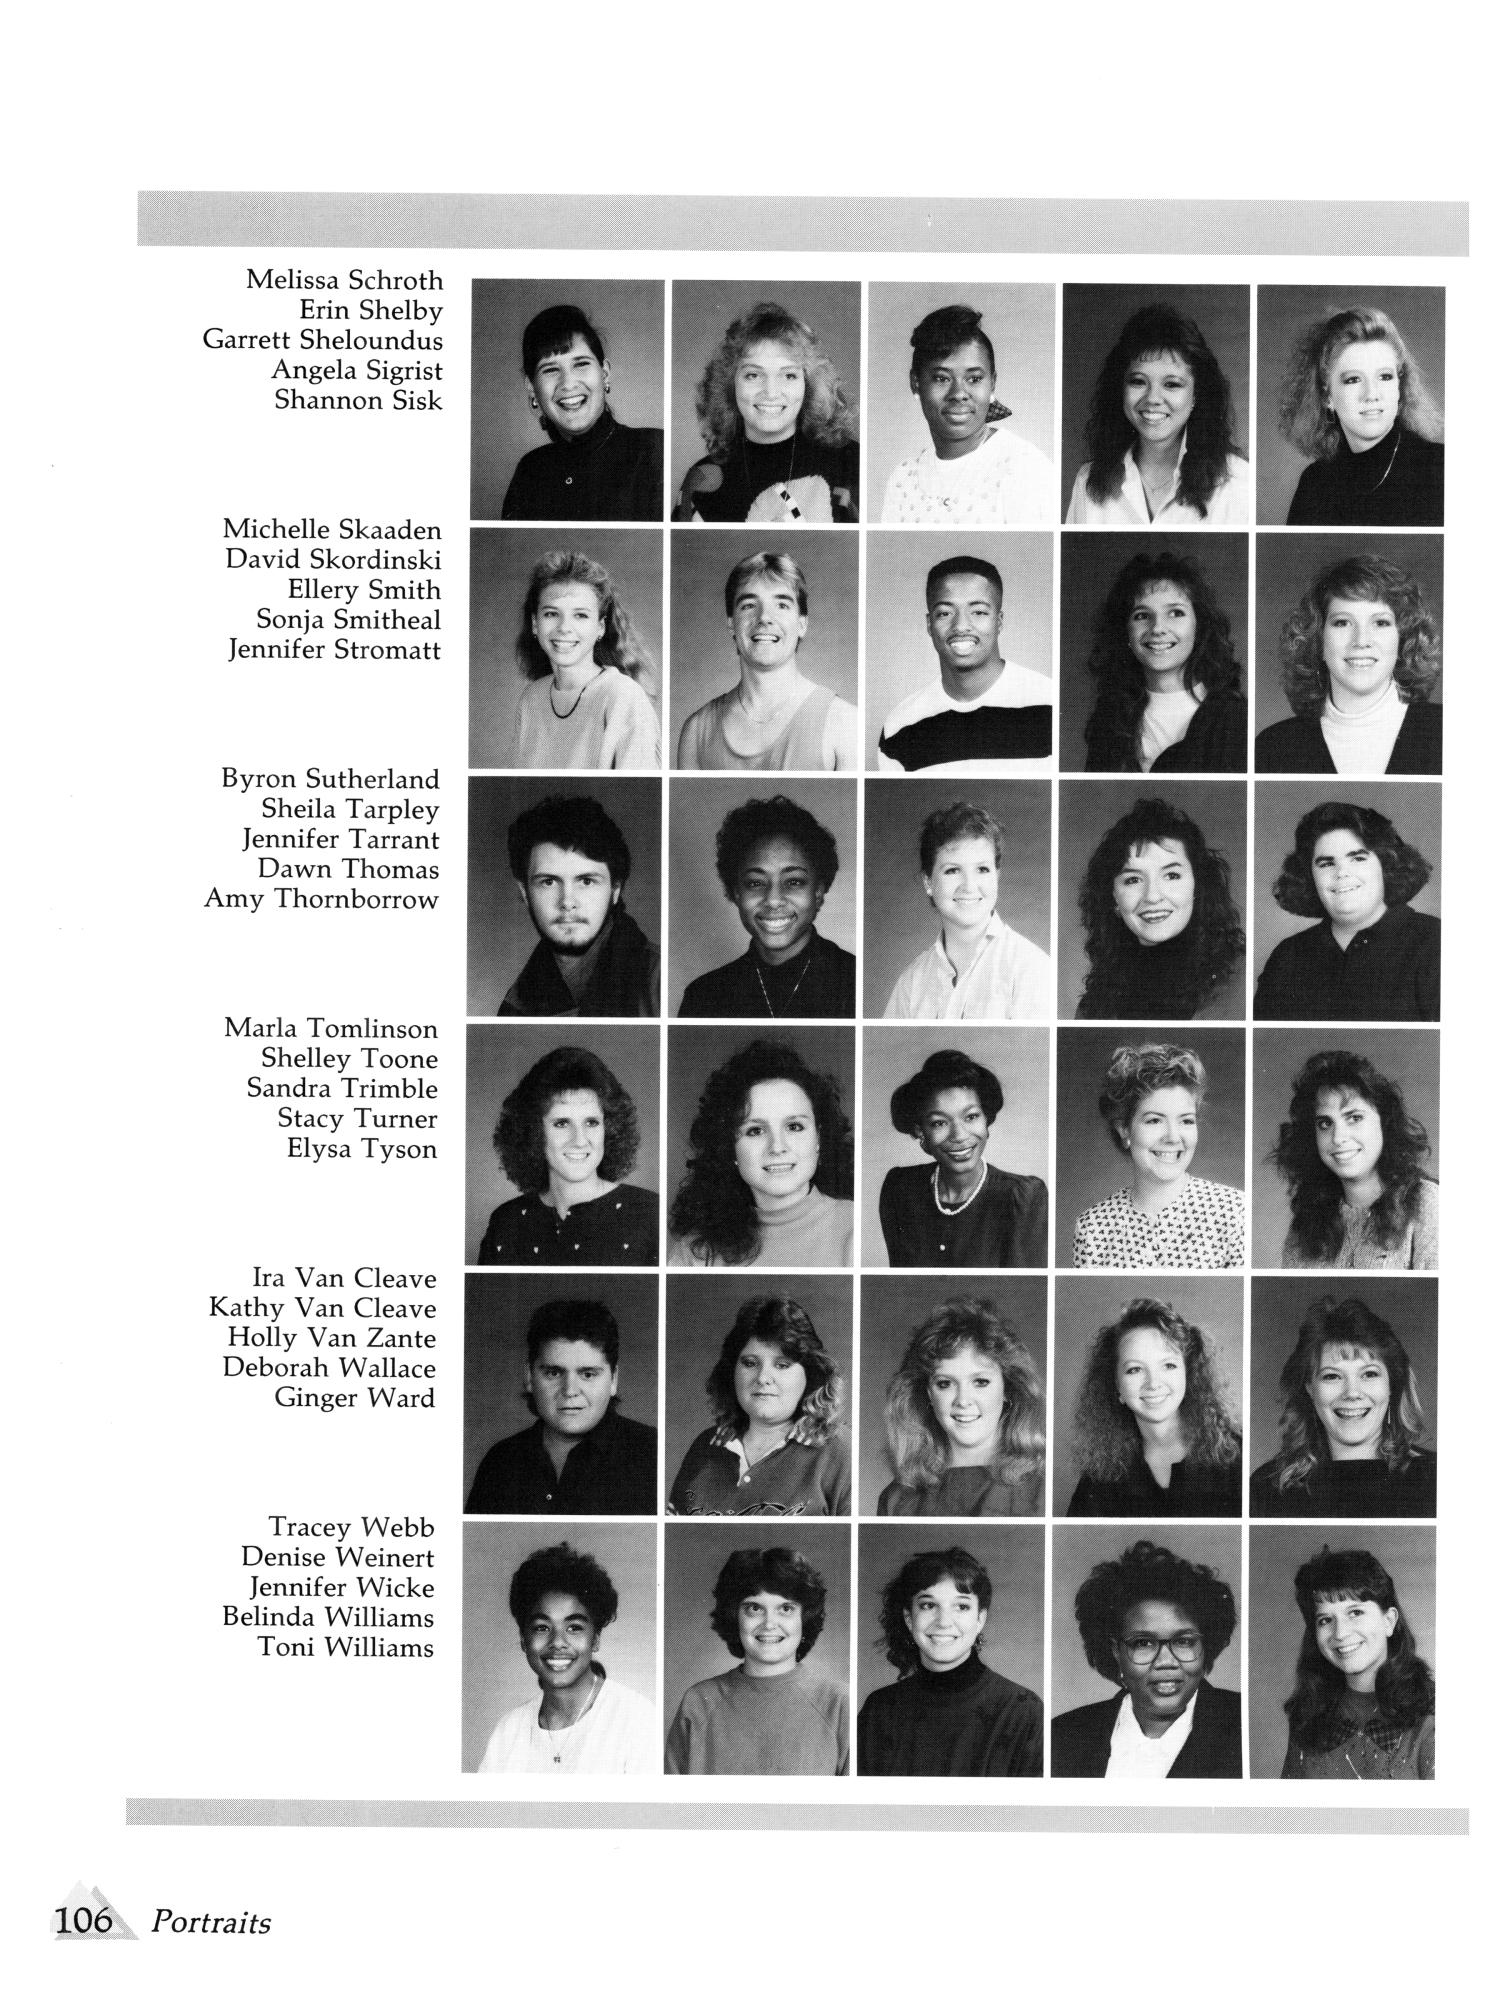 The aerie yearbook of university of north texas 1995 page 44 unt - The Aerie Yearbook Of University Of North Texas 1989 Page 106 Digital